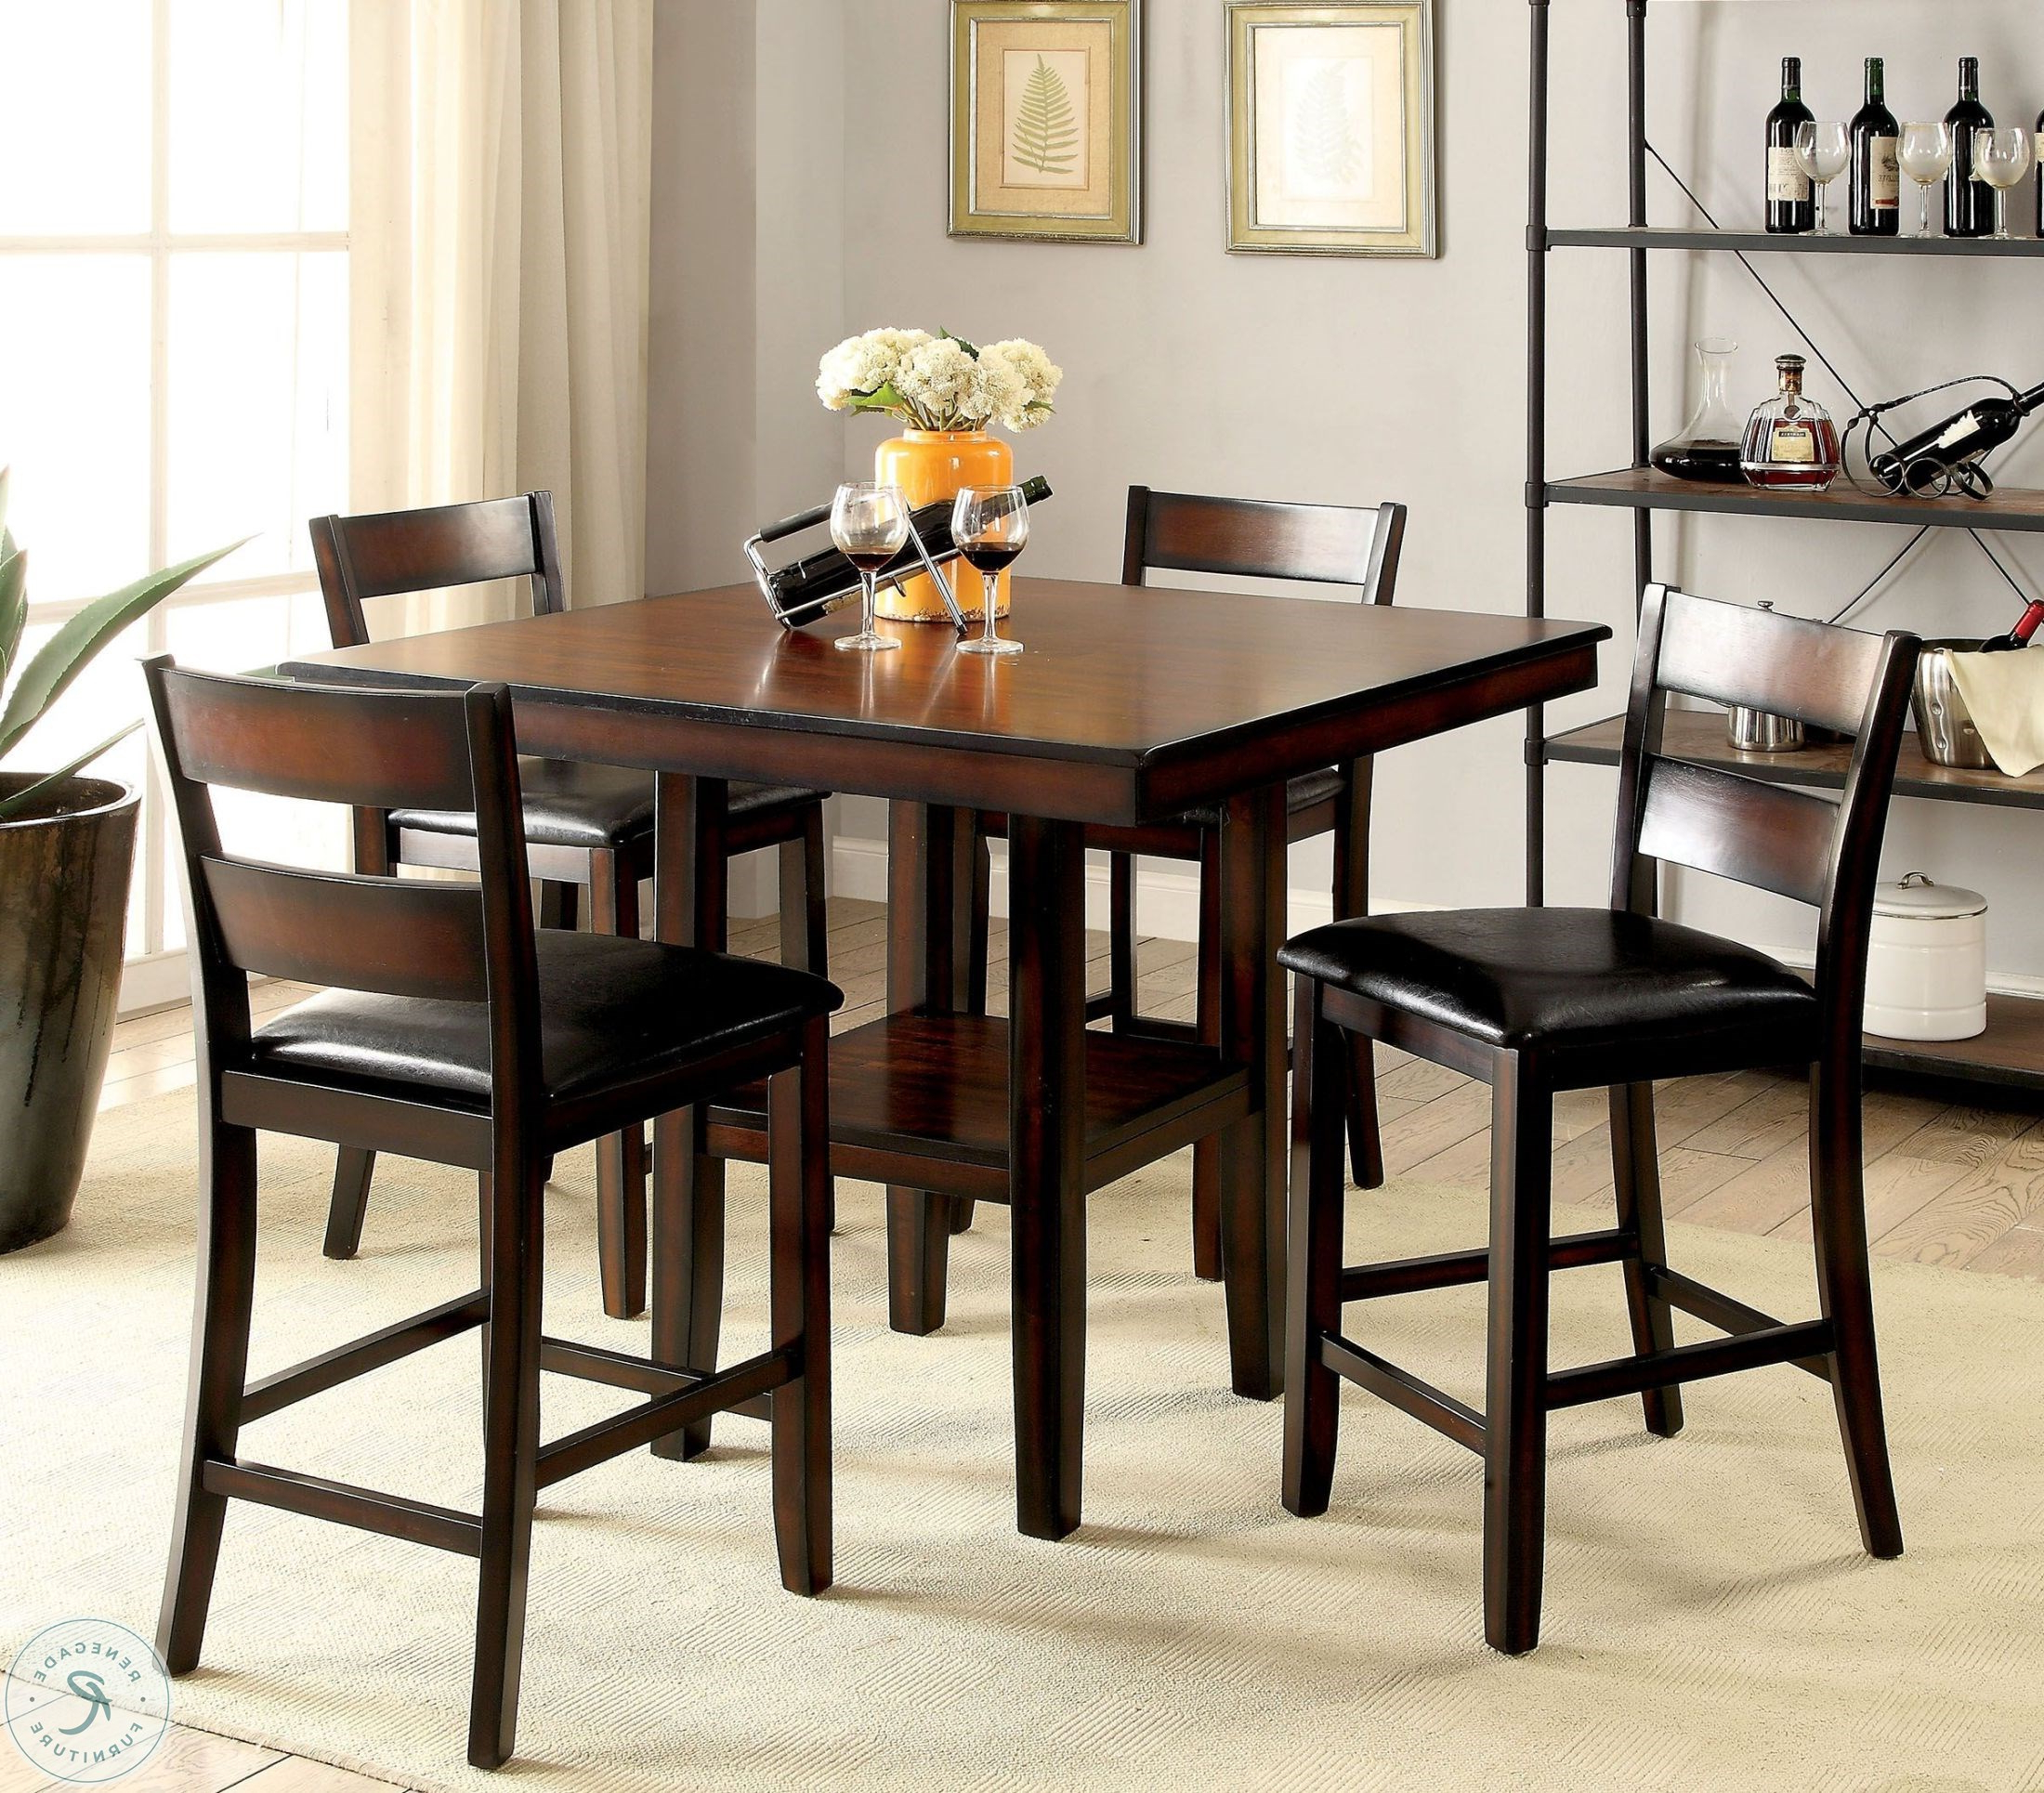 Anette 3 Piece Counter Height Dining Sets Regarding Recent Norah Ii Brown Cherry 5 Piece Counter Height Dining Set From (View 7 of 25)